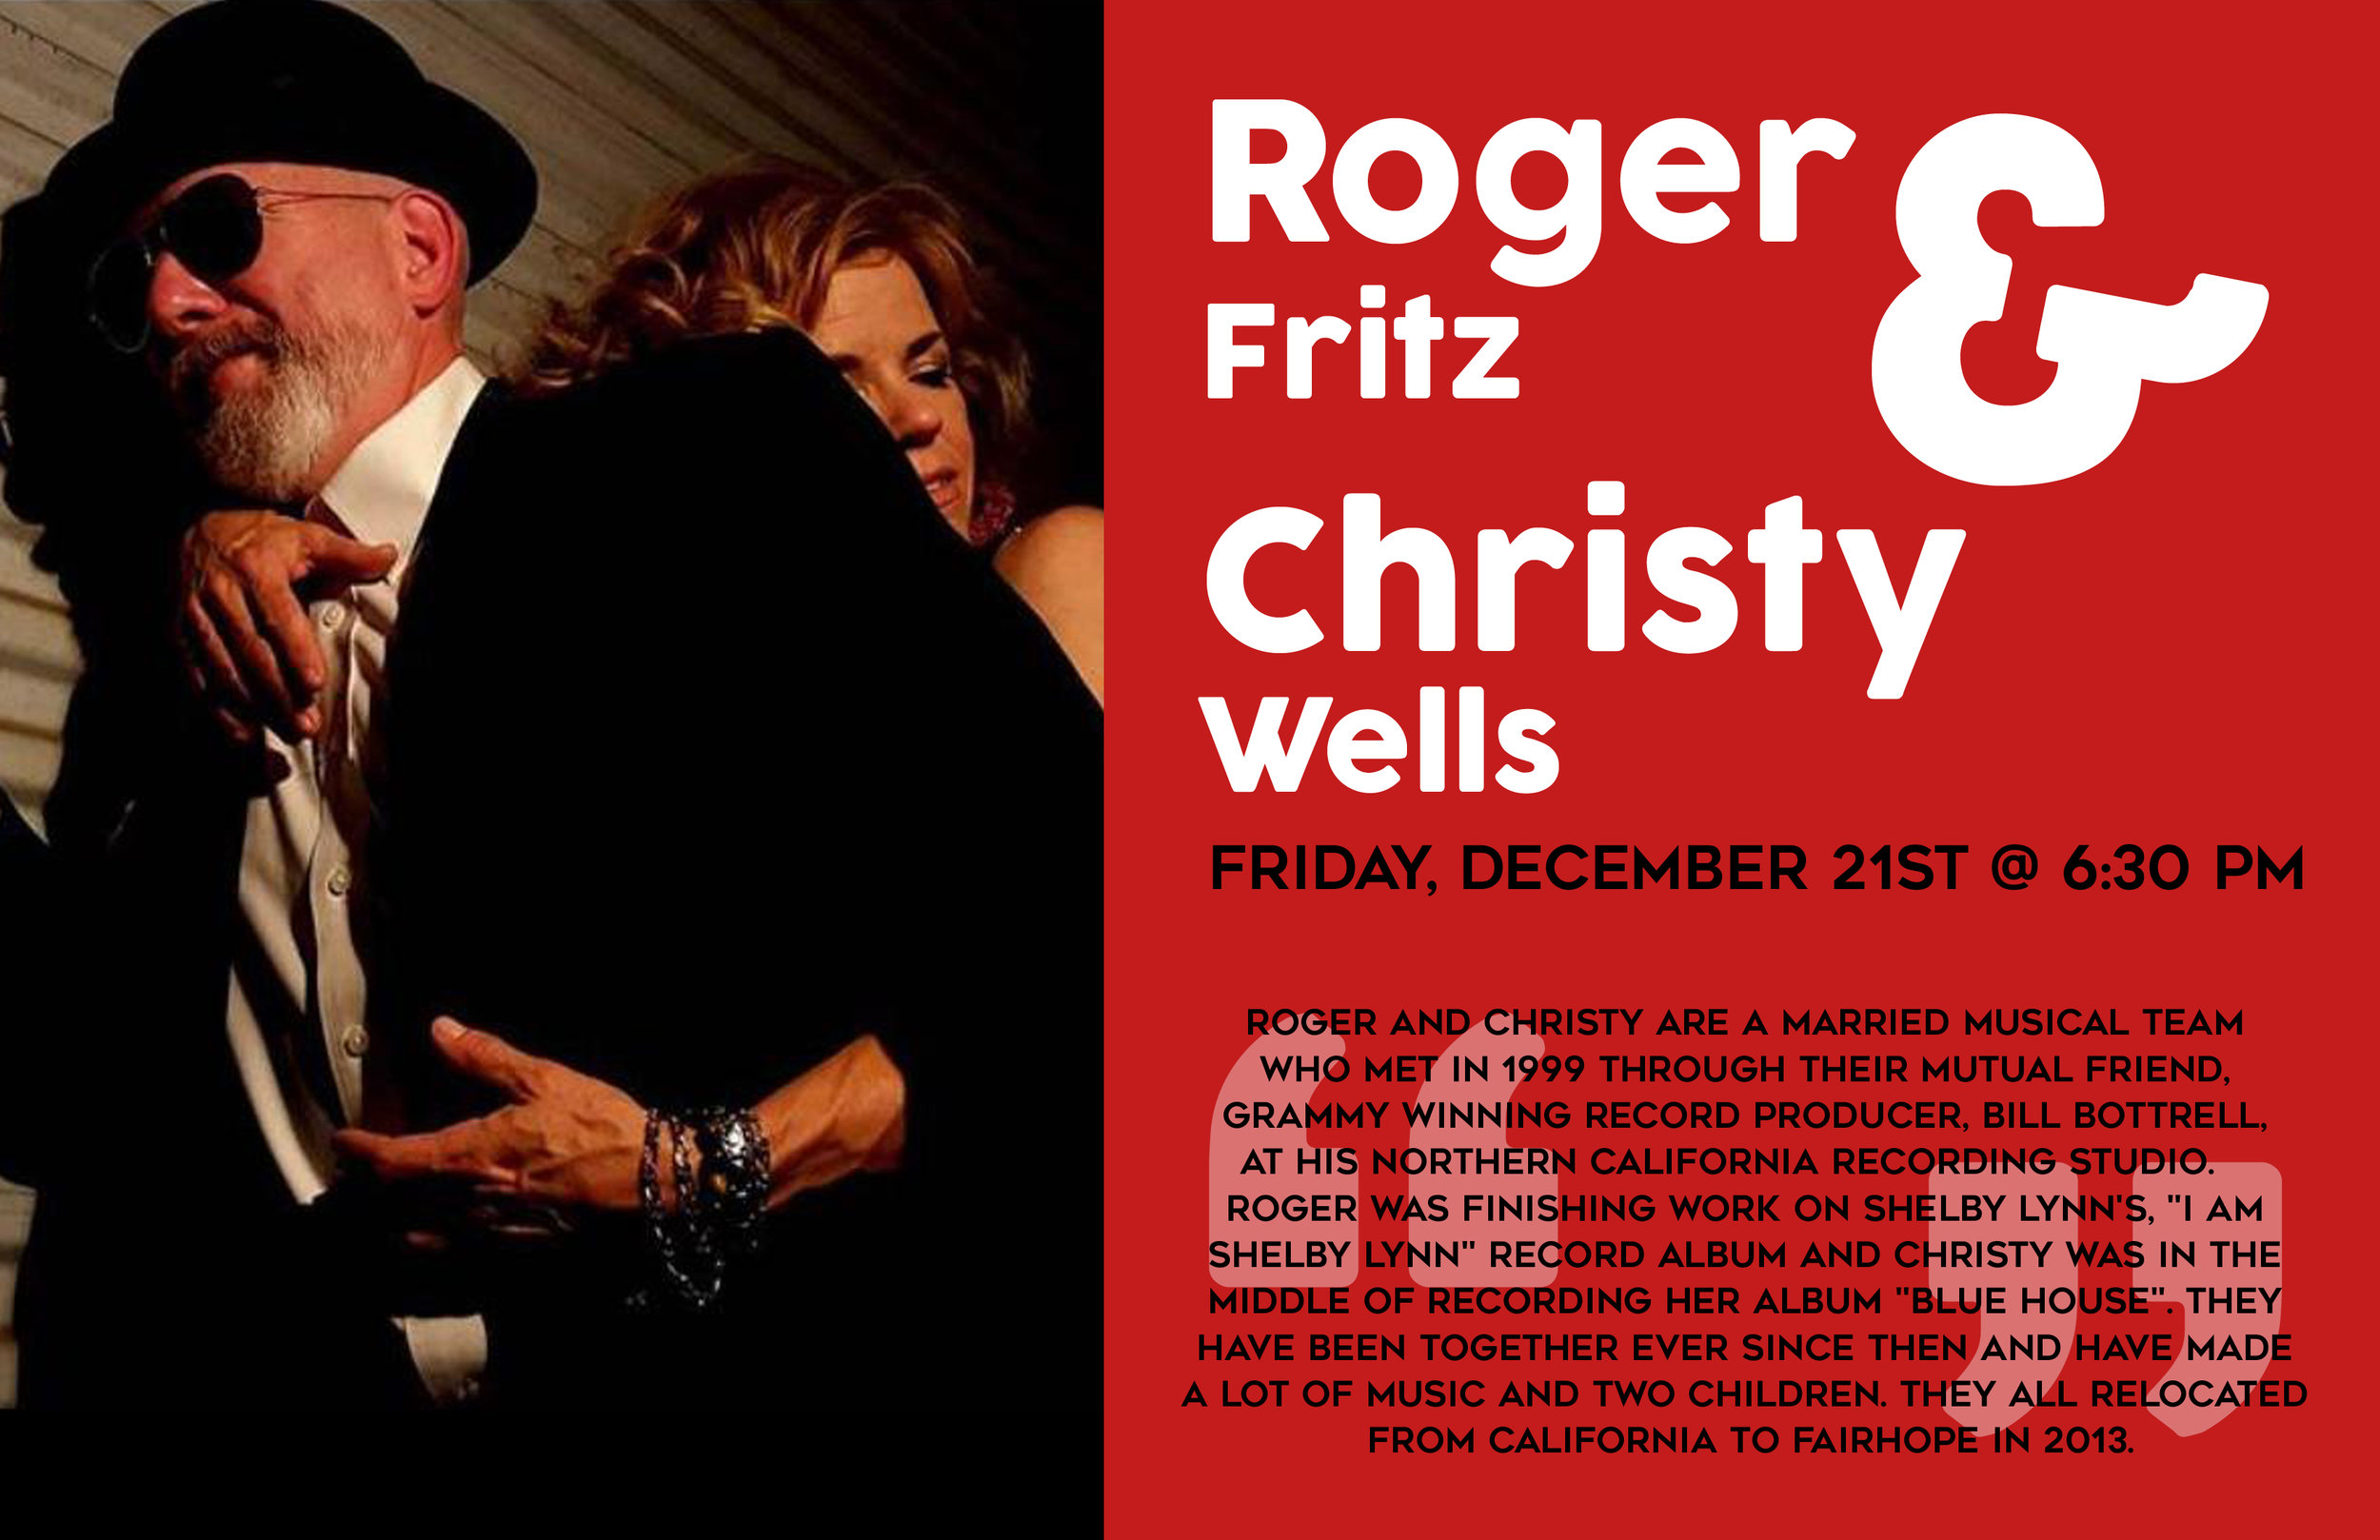 christy wells and roger fritz.jpg